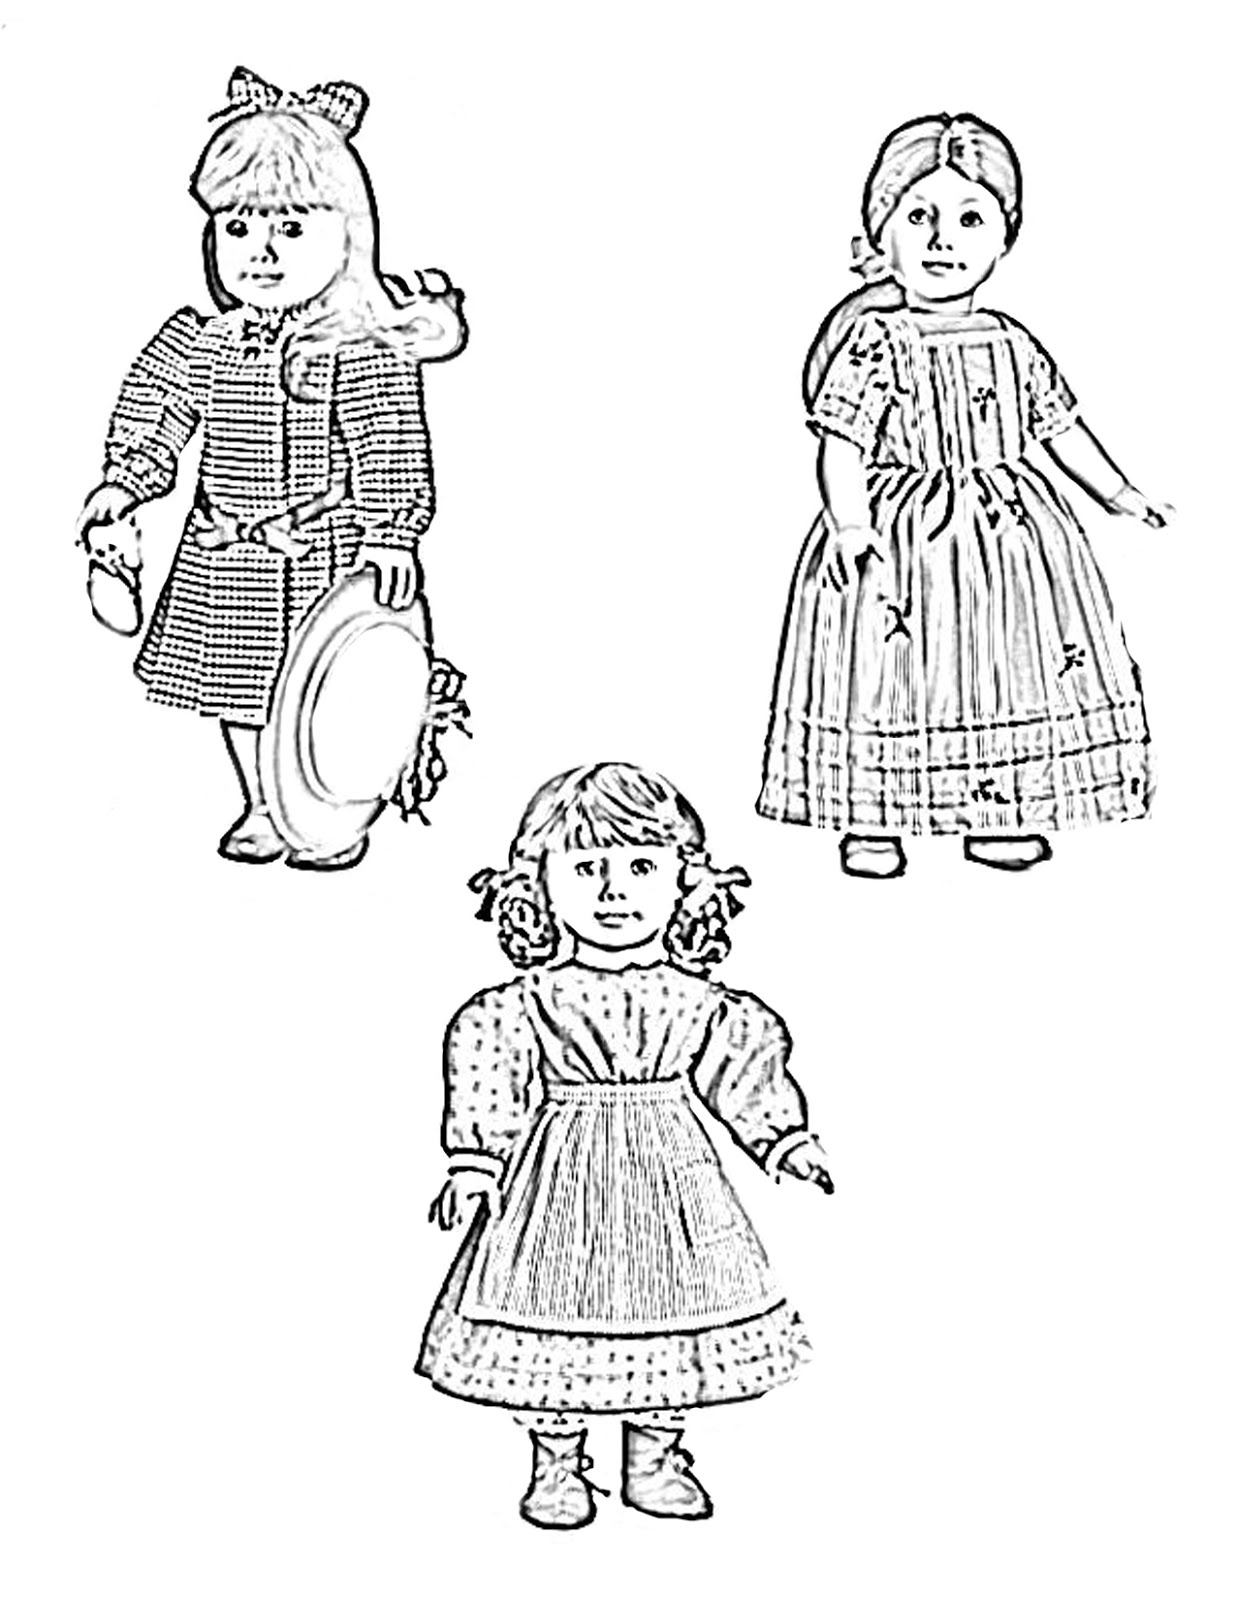 j american girl coloring pages | My Cup Overflows: Kit Kittredge: An American Girl